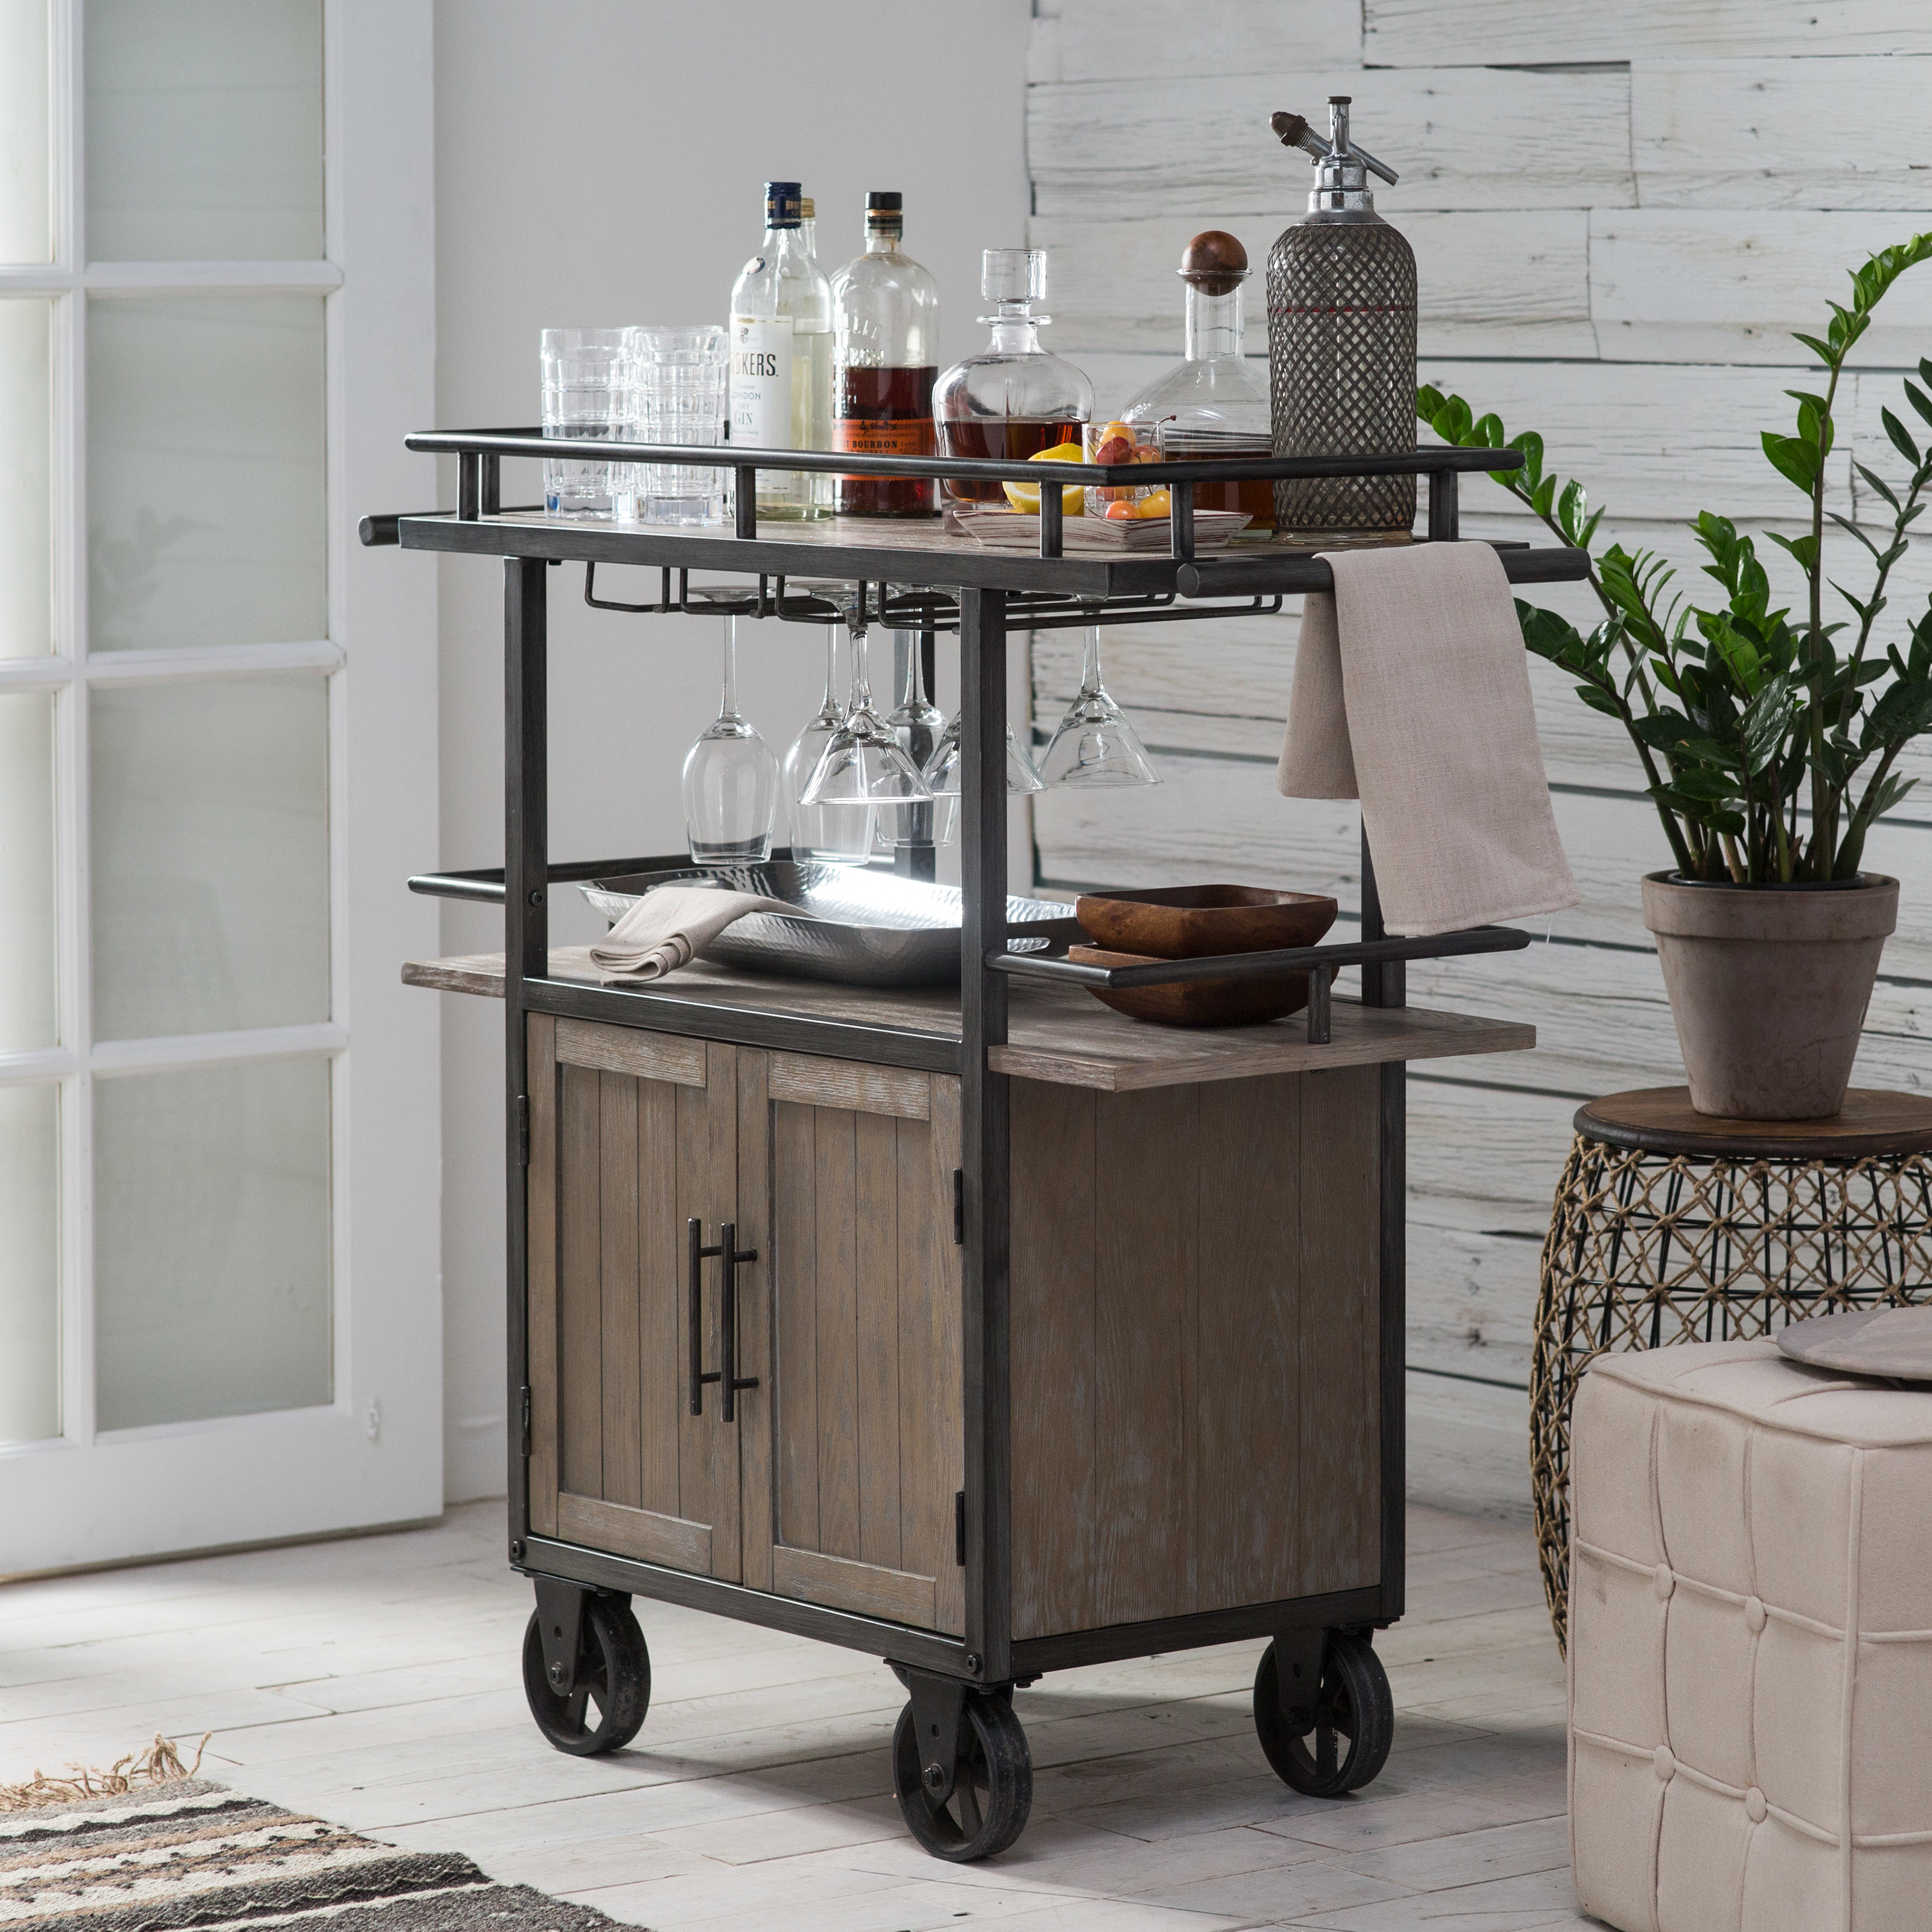 Industrial Kitchen Cart Bar Cart Serving Cart: Belham Living Jamestown Industrial Bar Cart